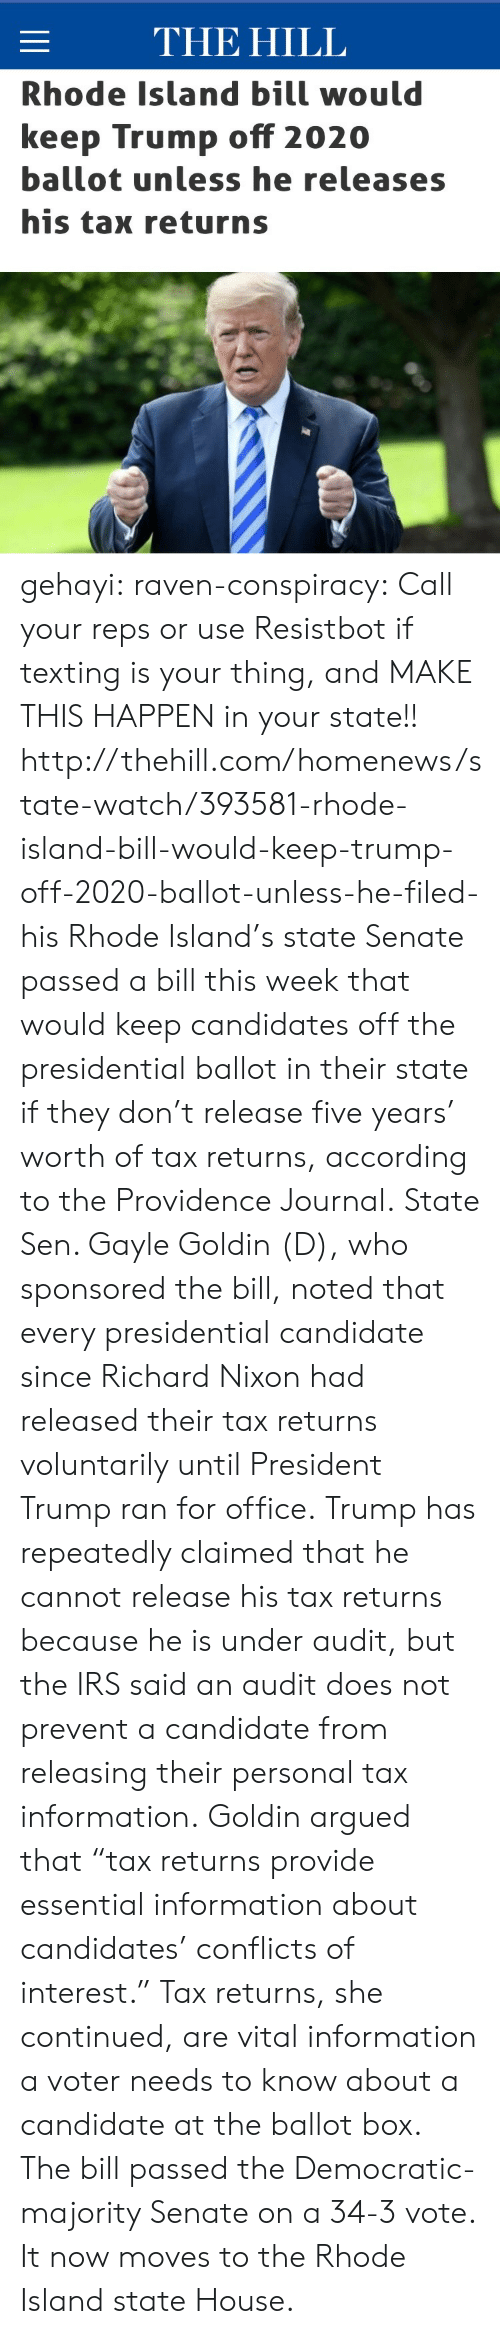 "Providence: THE HILL  Rhode Island bill would  keep Trump off 2020  ballot unless he releases  his tax returns gehayi:  raven-conspiracy:  Call your reps or use Resistbot if texting is your thing, and MAKE THIS HAPPEN in your state!!  http://thehill.com/homenews/state-watch/393581-rhode-island-bill-would-keep-trump-off-2020-ballot-unless-he-filed-his   Rhode Island's state Senate passed a bill this week that would keep candidates off the presidential ballot in their state if they don't release five years' worth of tax returns, according to the Providence Journal. State Sen. Gayle Goldin (D), who sponsored the bill, noted that every presidential candidate since Richard Nixon had released their tax returns voluntarily until President Trump ran for office. Trump has repeatedly claimed that he cannot release his tax returns because he is under audit, but the IRS said an audit does not prevent a candidate from releasing their personal tax information. Goldin argued that ""tax returns provide essential information about candidates' conflicts of interest."" Tax returns, she continued, are vital information a voter needs to know about a candidate at the ballot box. The bill passed the Democratic-majority Senate on a 34-3 vote. It now moves to the Rhode Island state House."